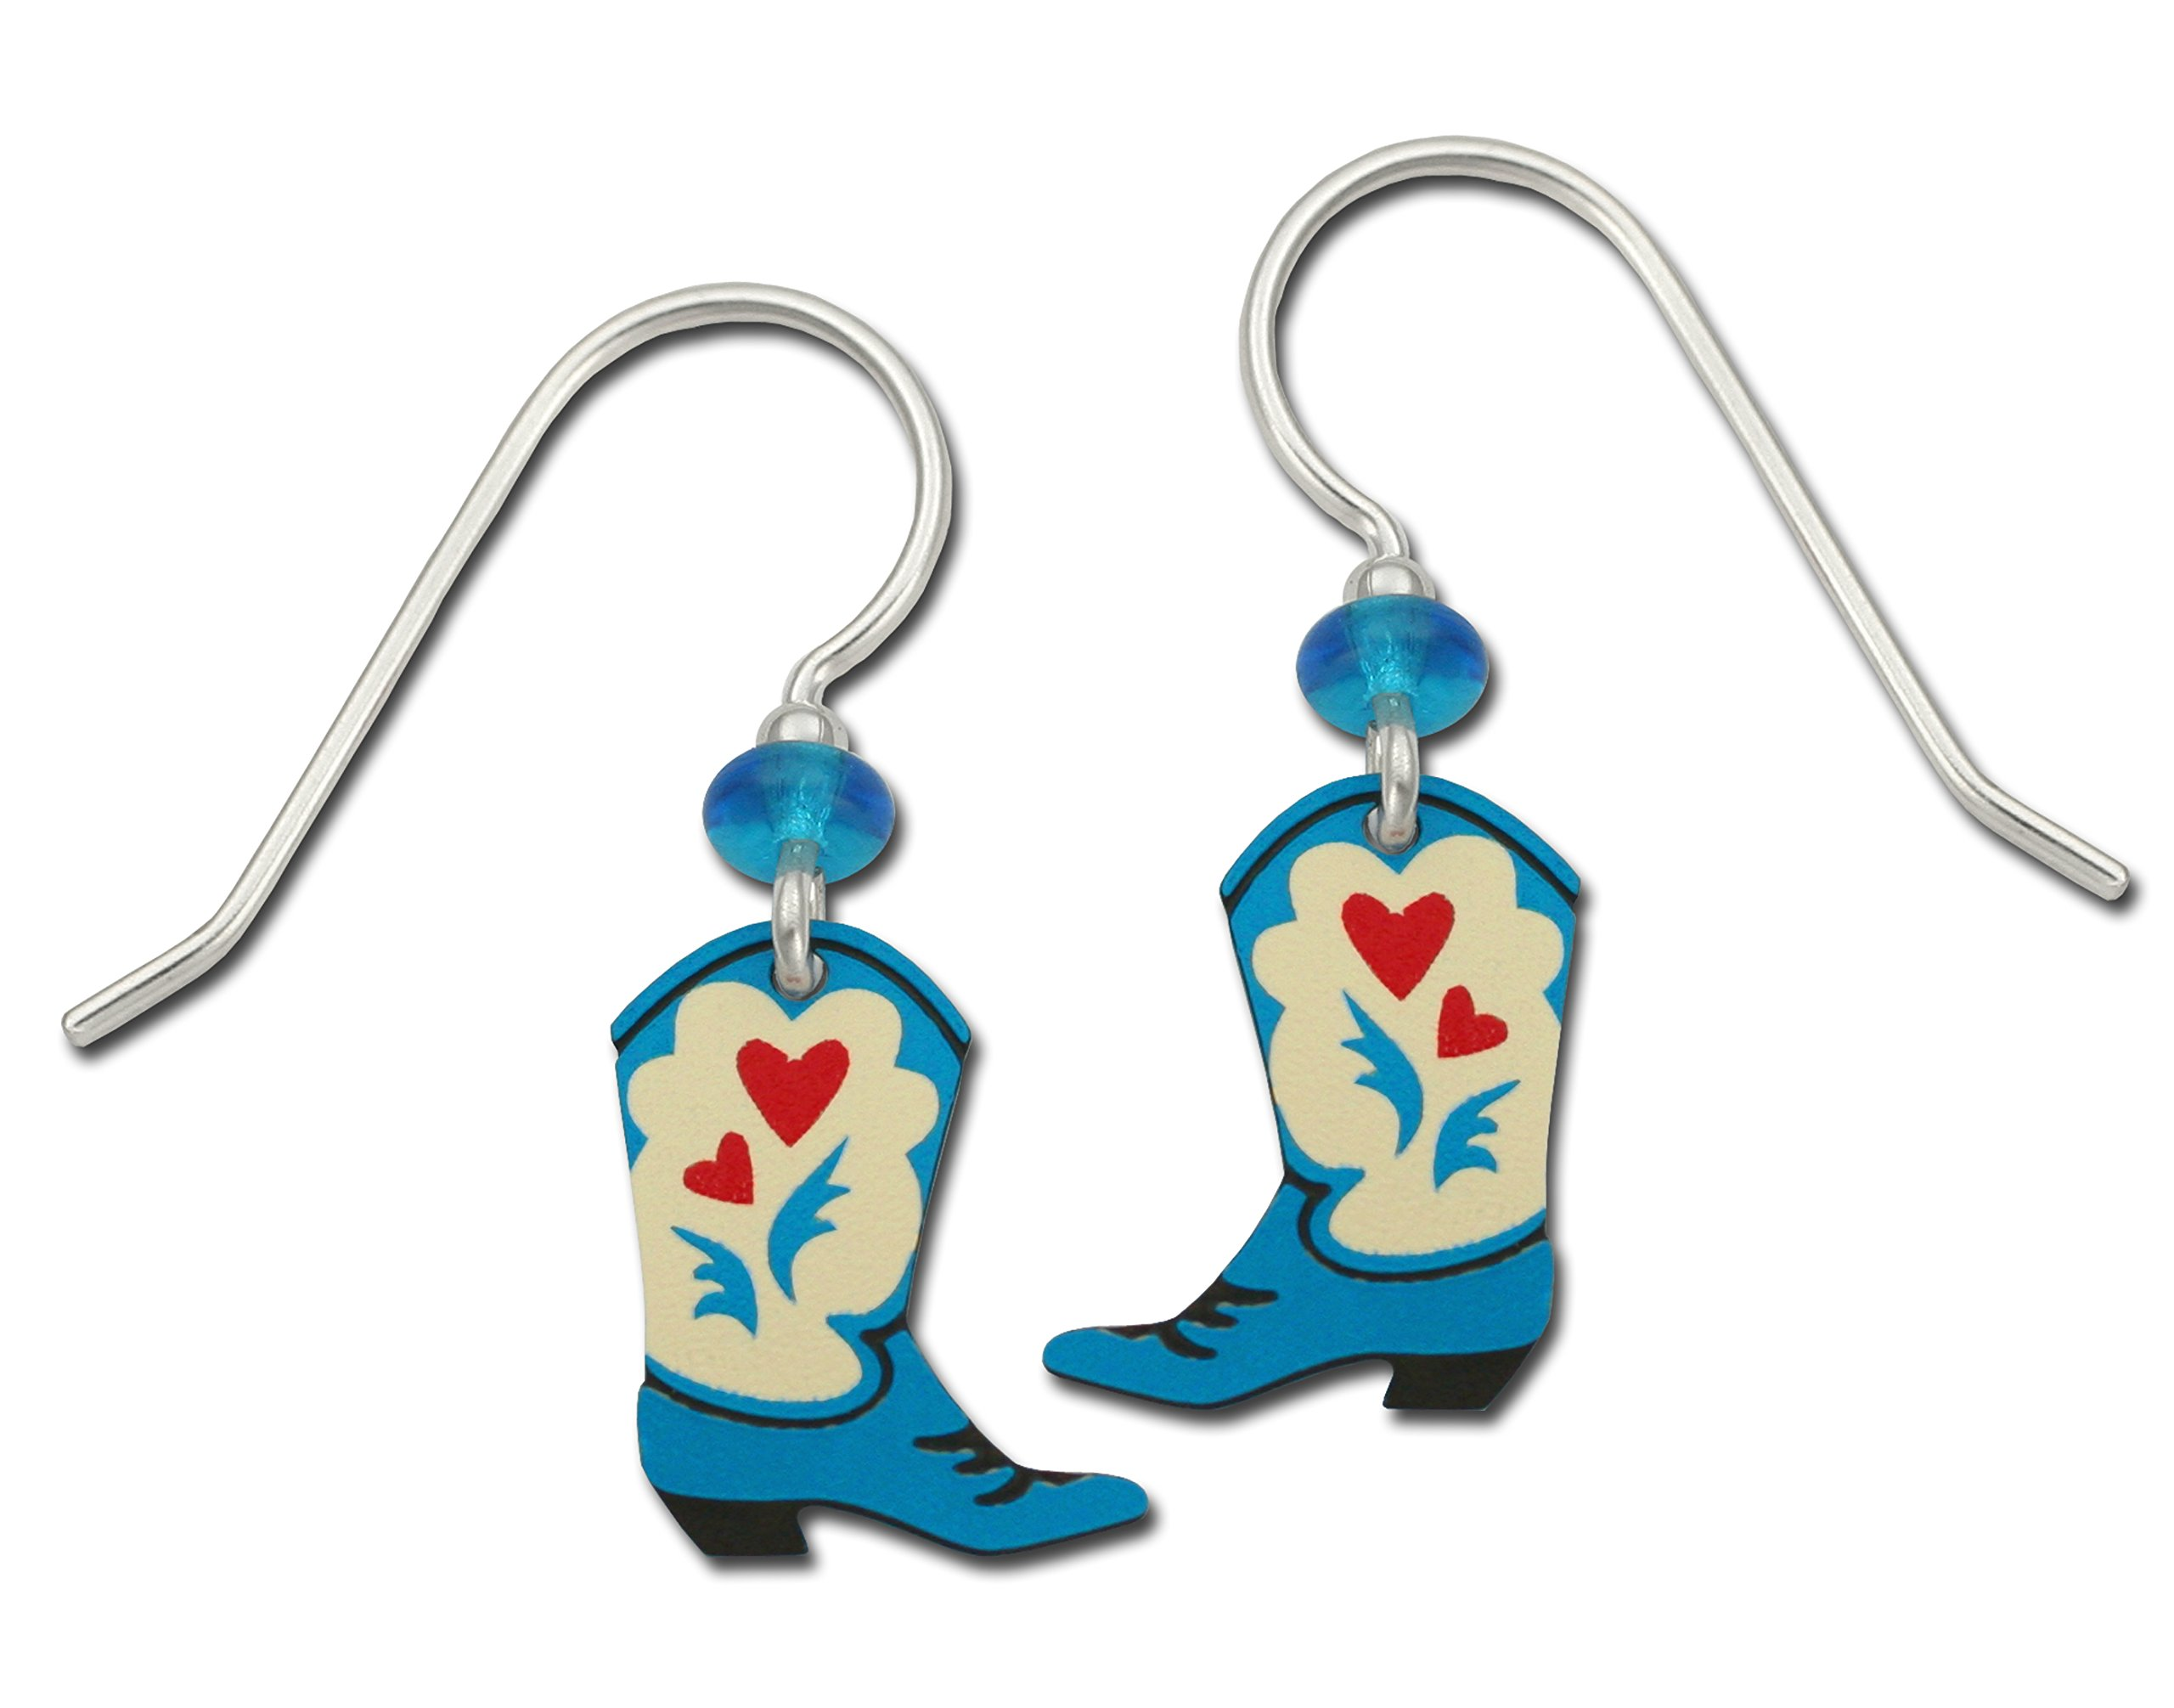 Sienna Sky Cowgirl Cowboy Western Boots Red Hearts Hand Painted Earrings with Gift Box Made in USA